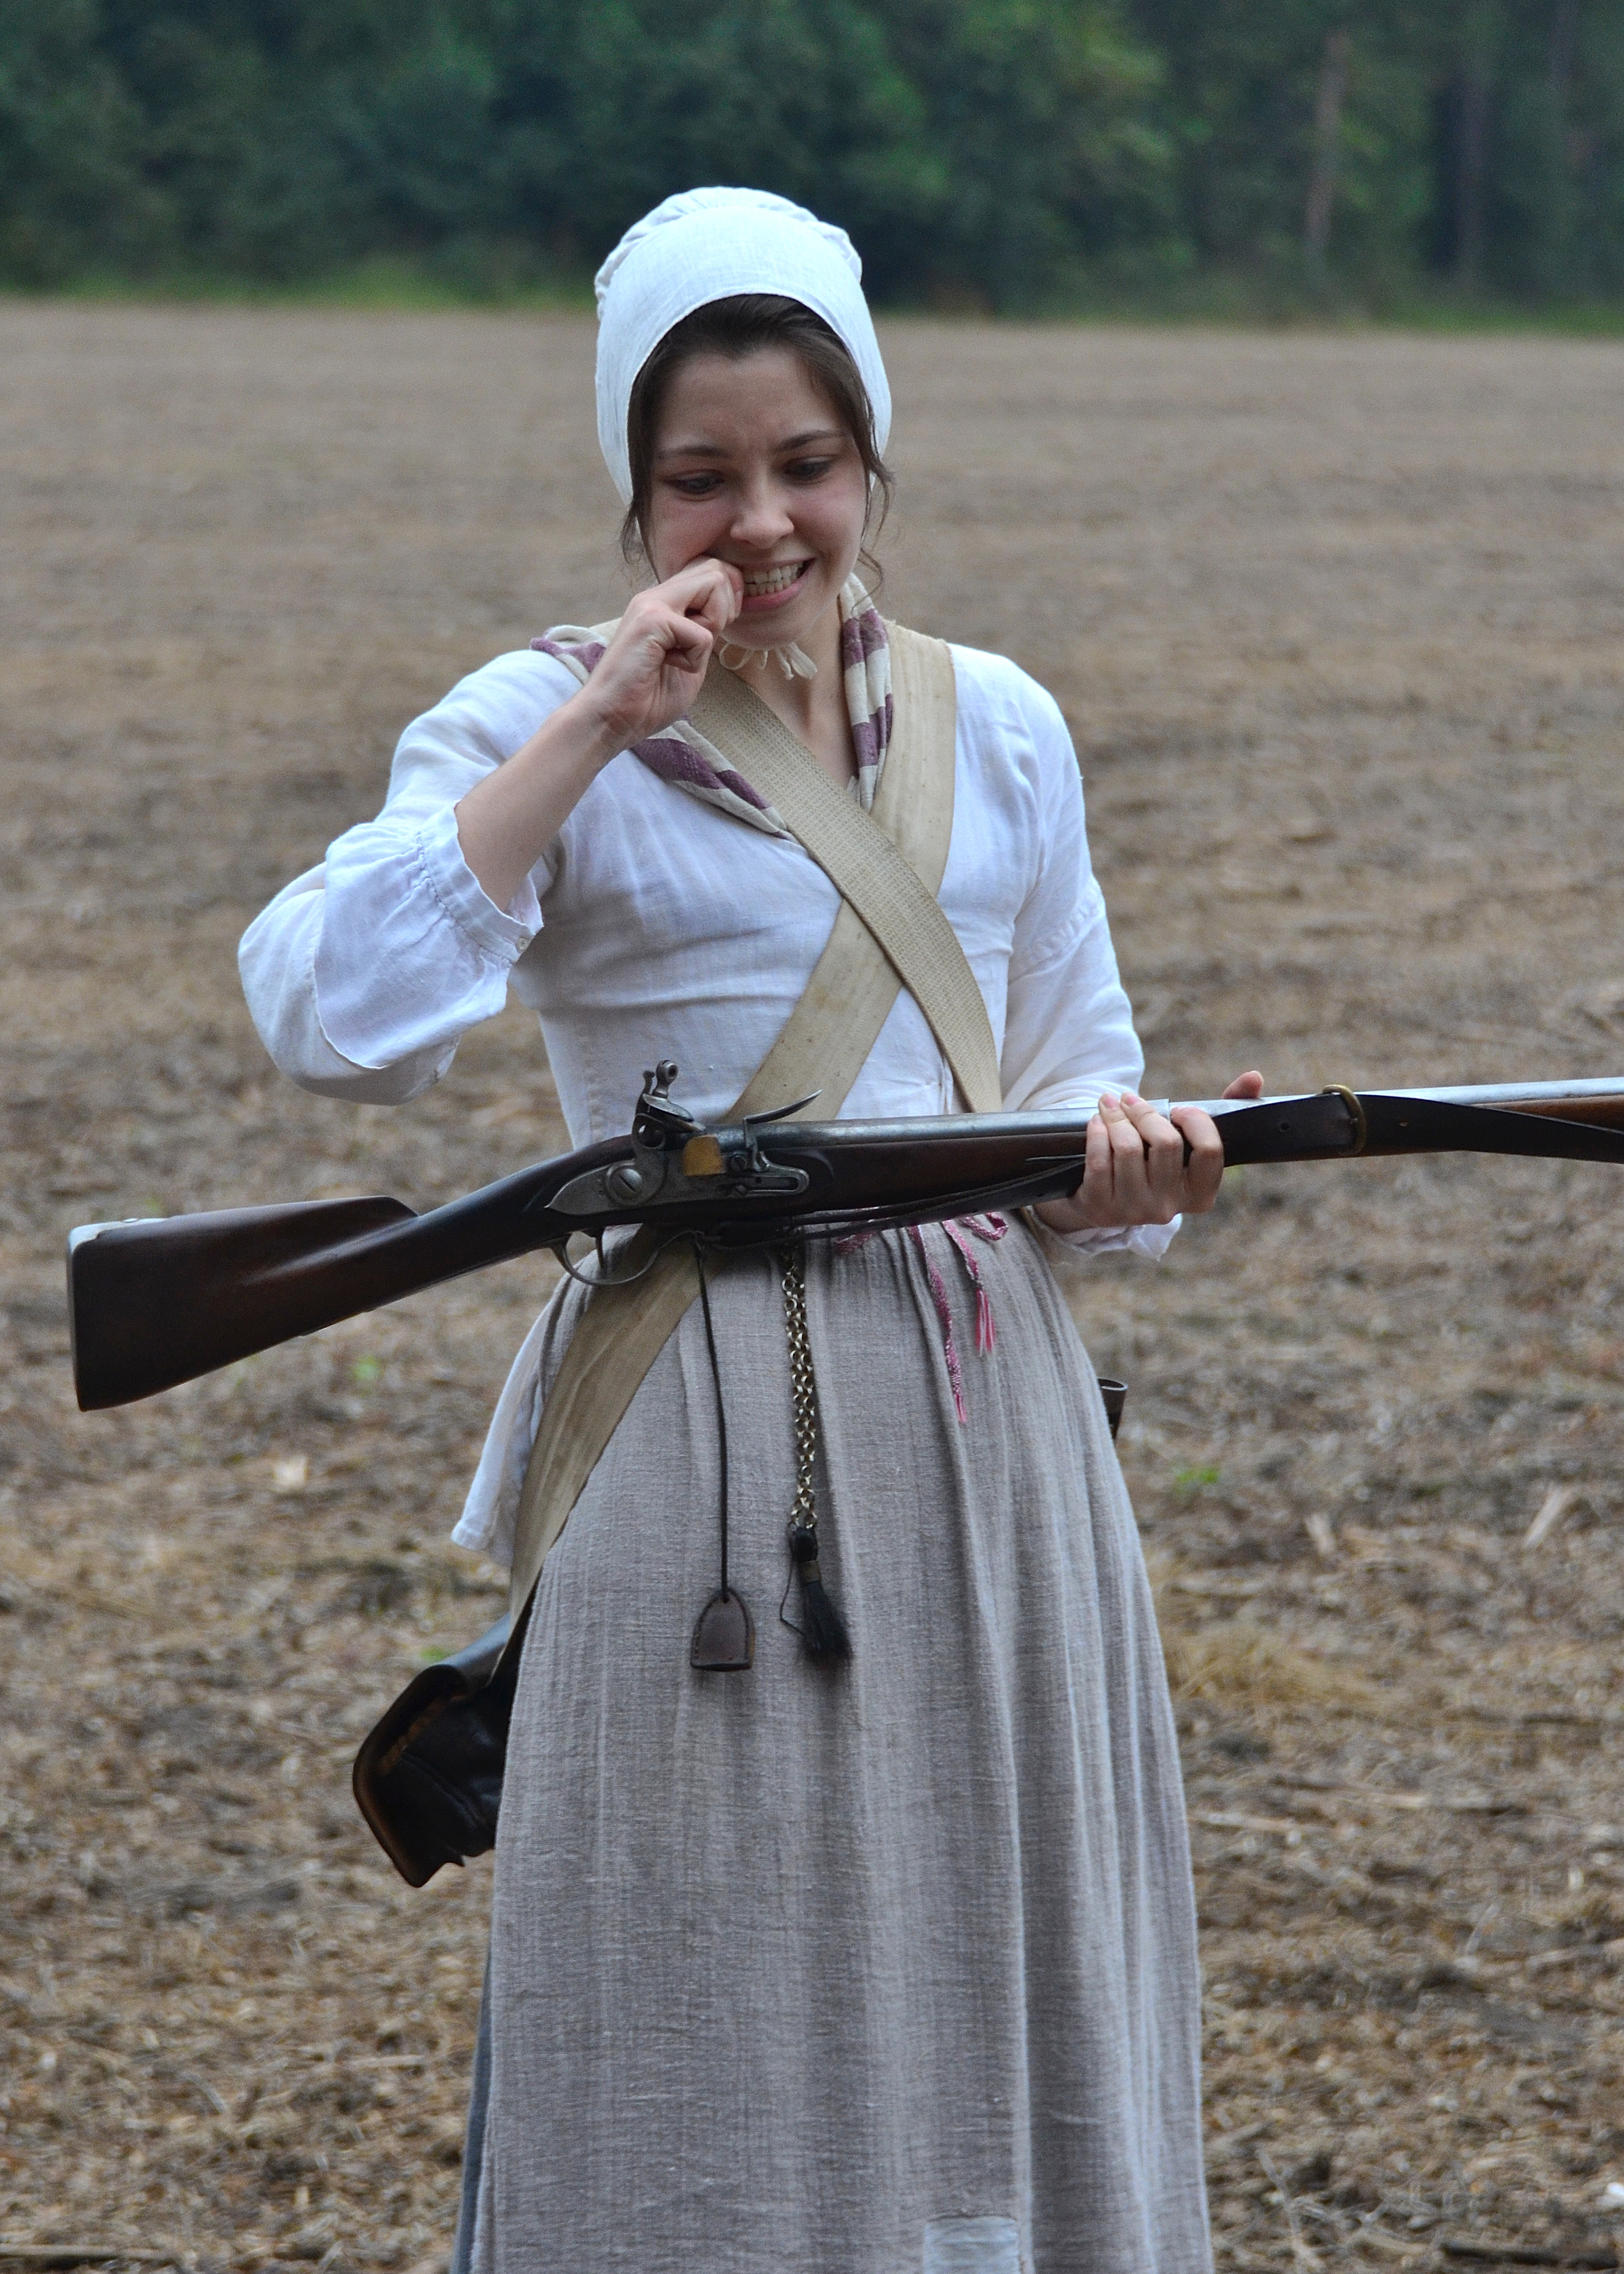 6th-nc-musket-practice_21556397150_o